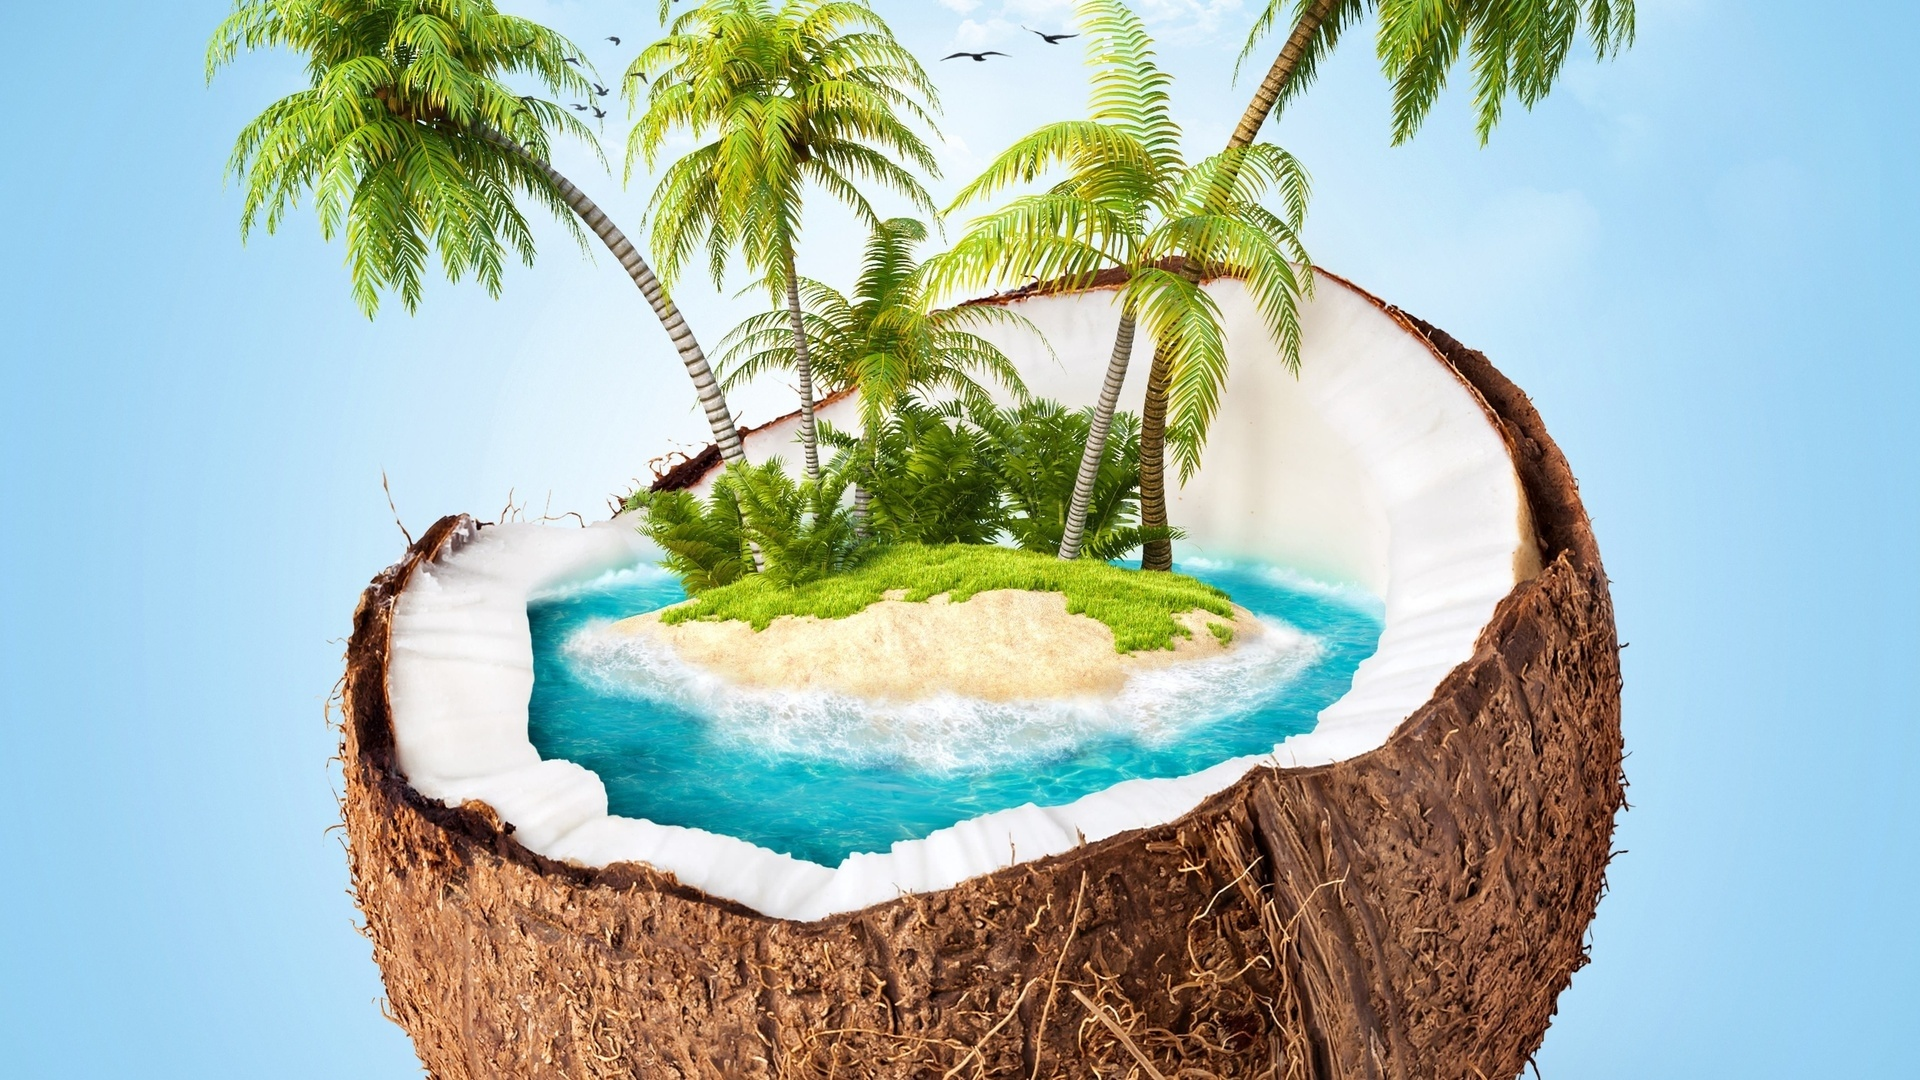 Coconuts By The Sea background wallpaper